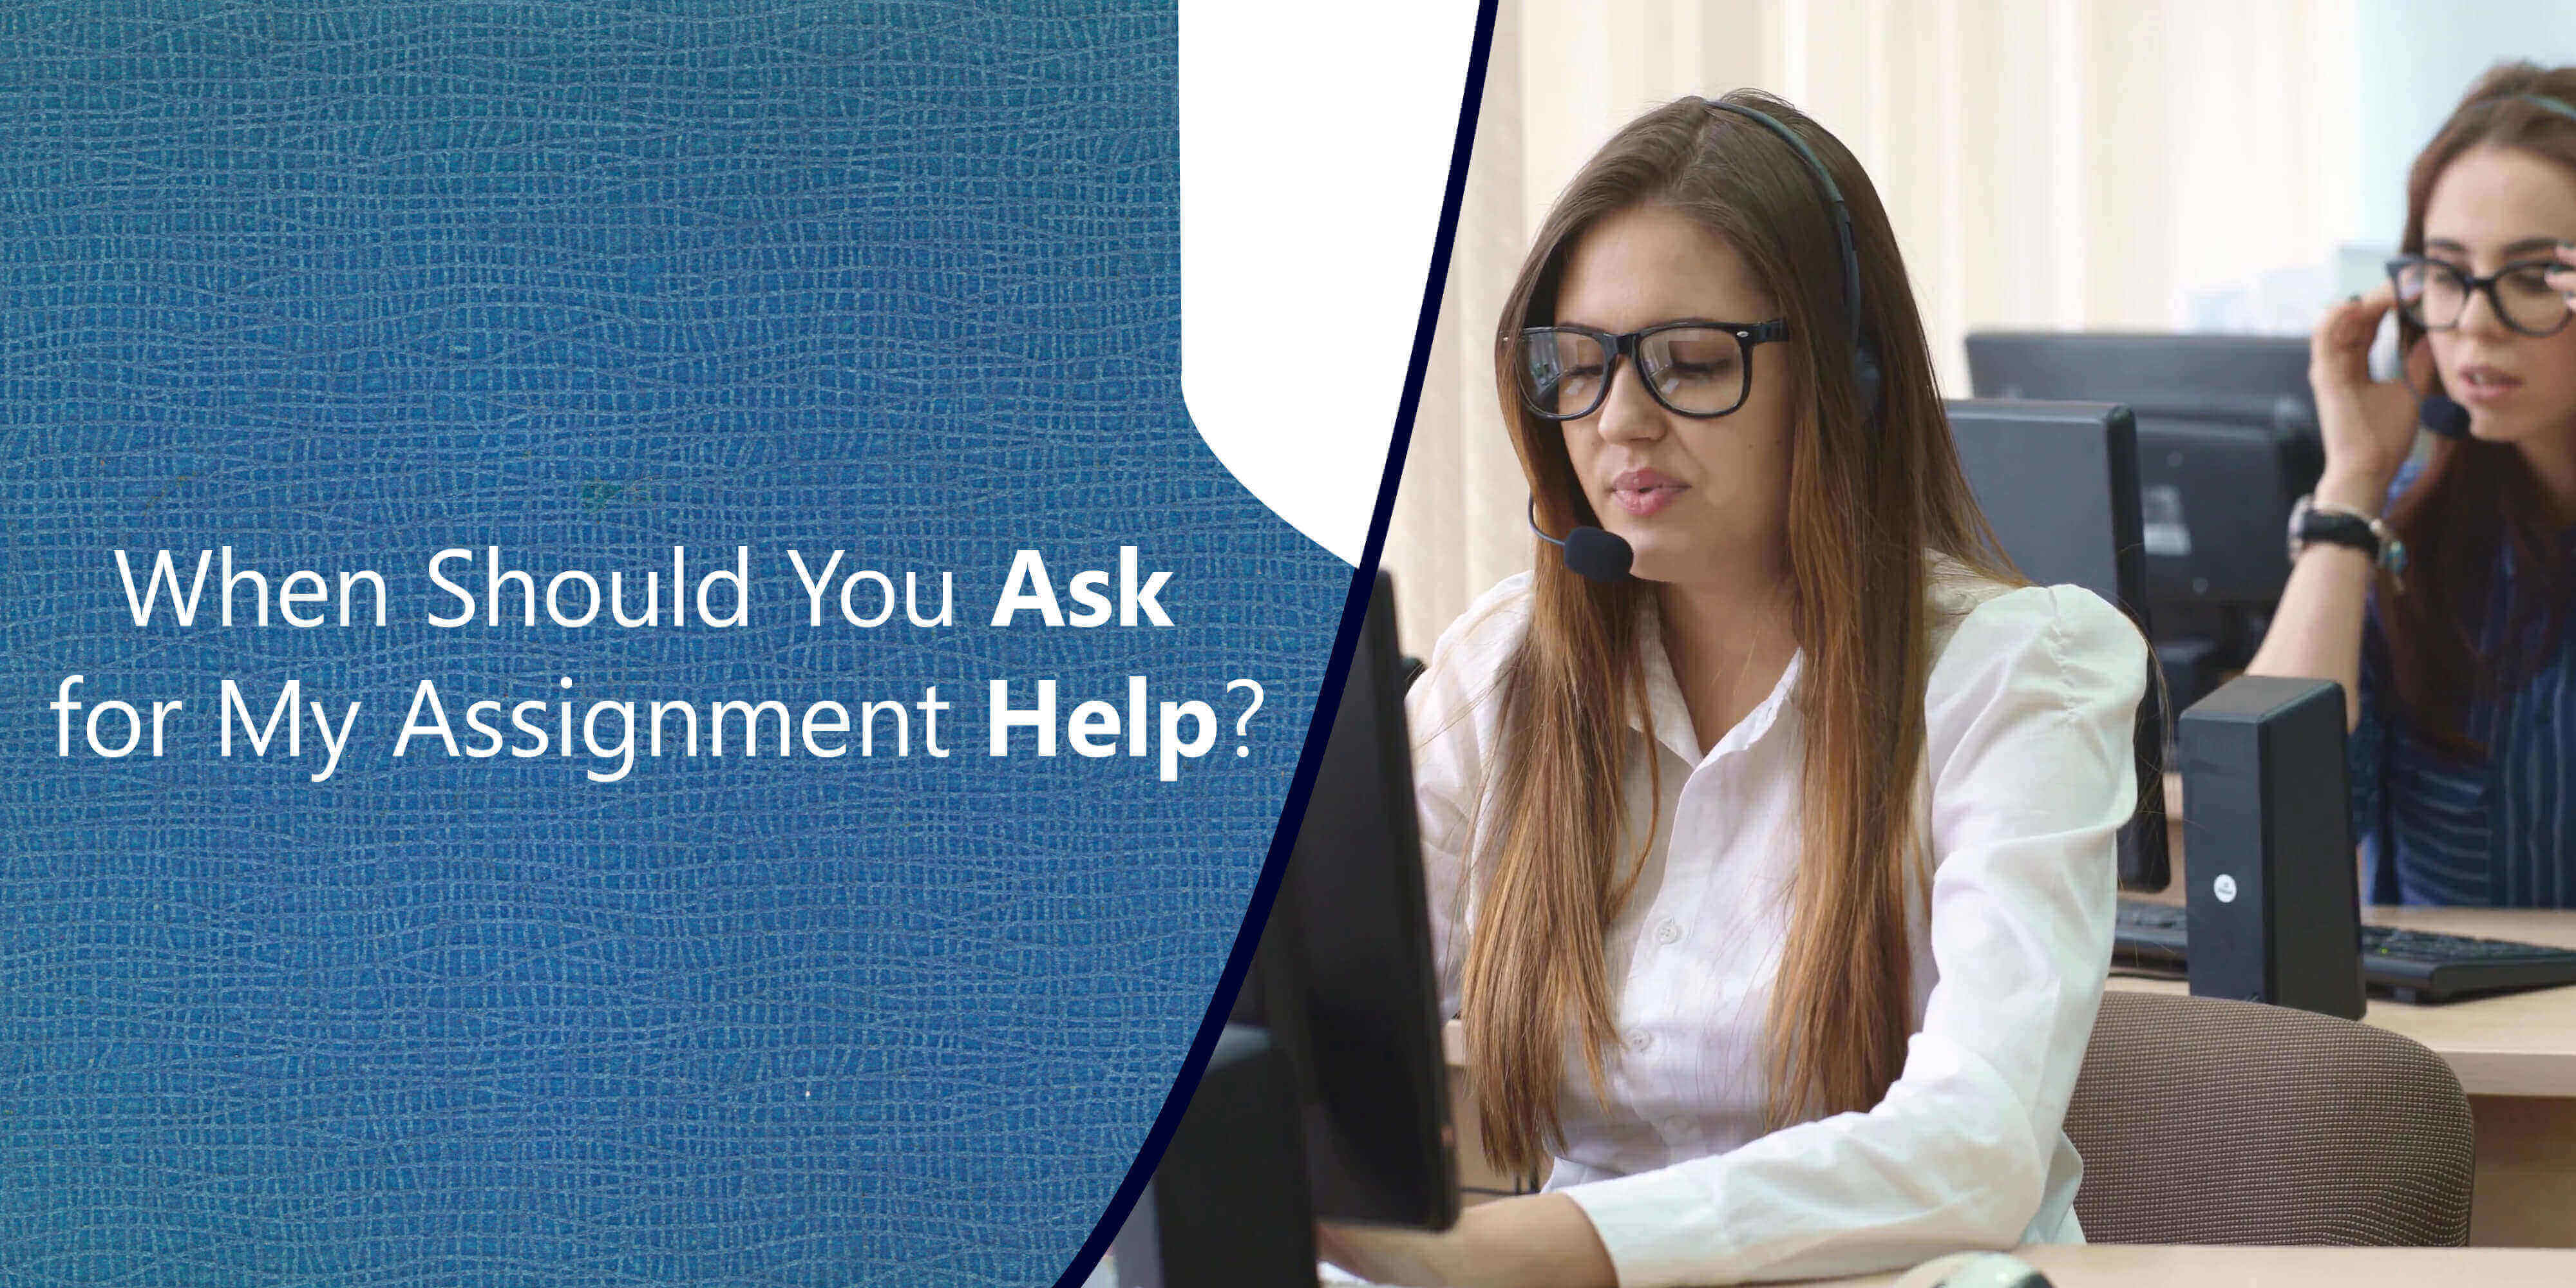 When Should You Ask for My Assignment Help